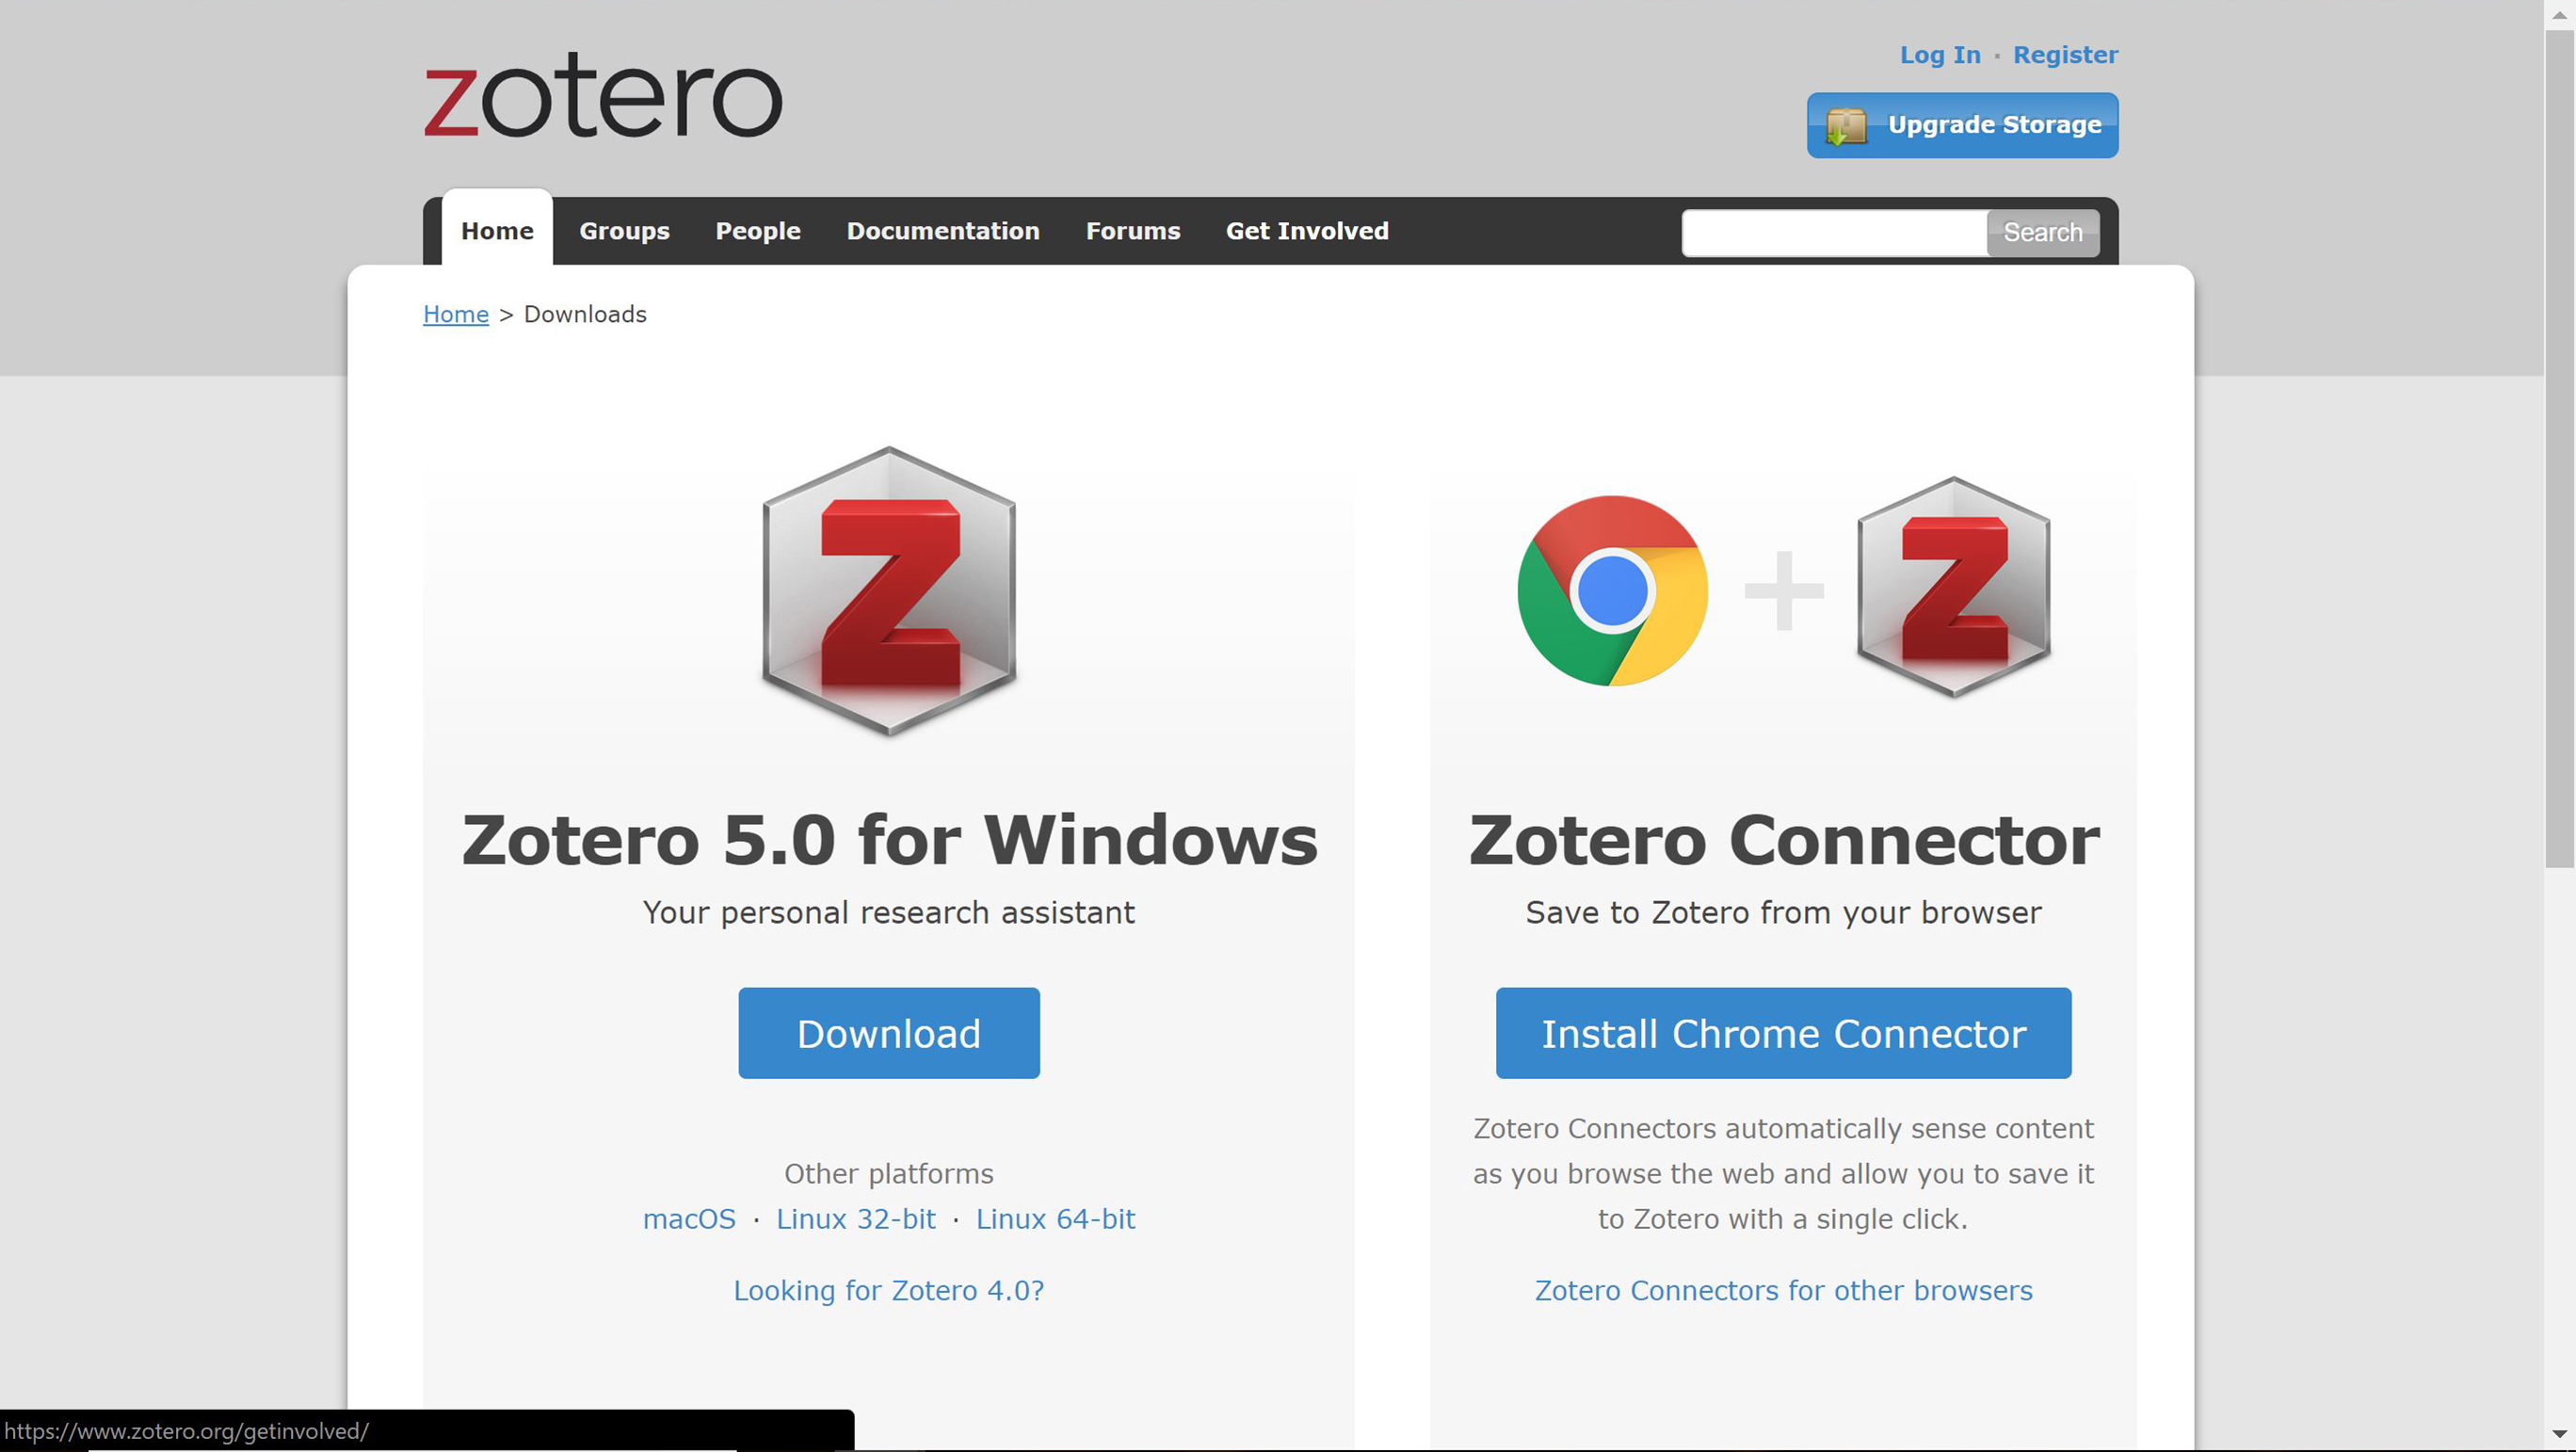 Zotero Downloads